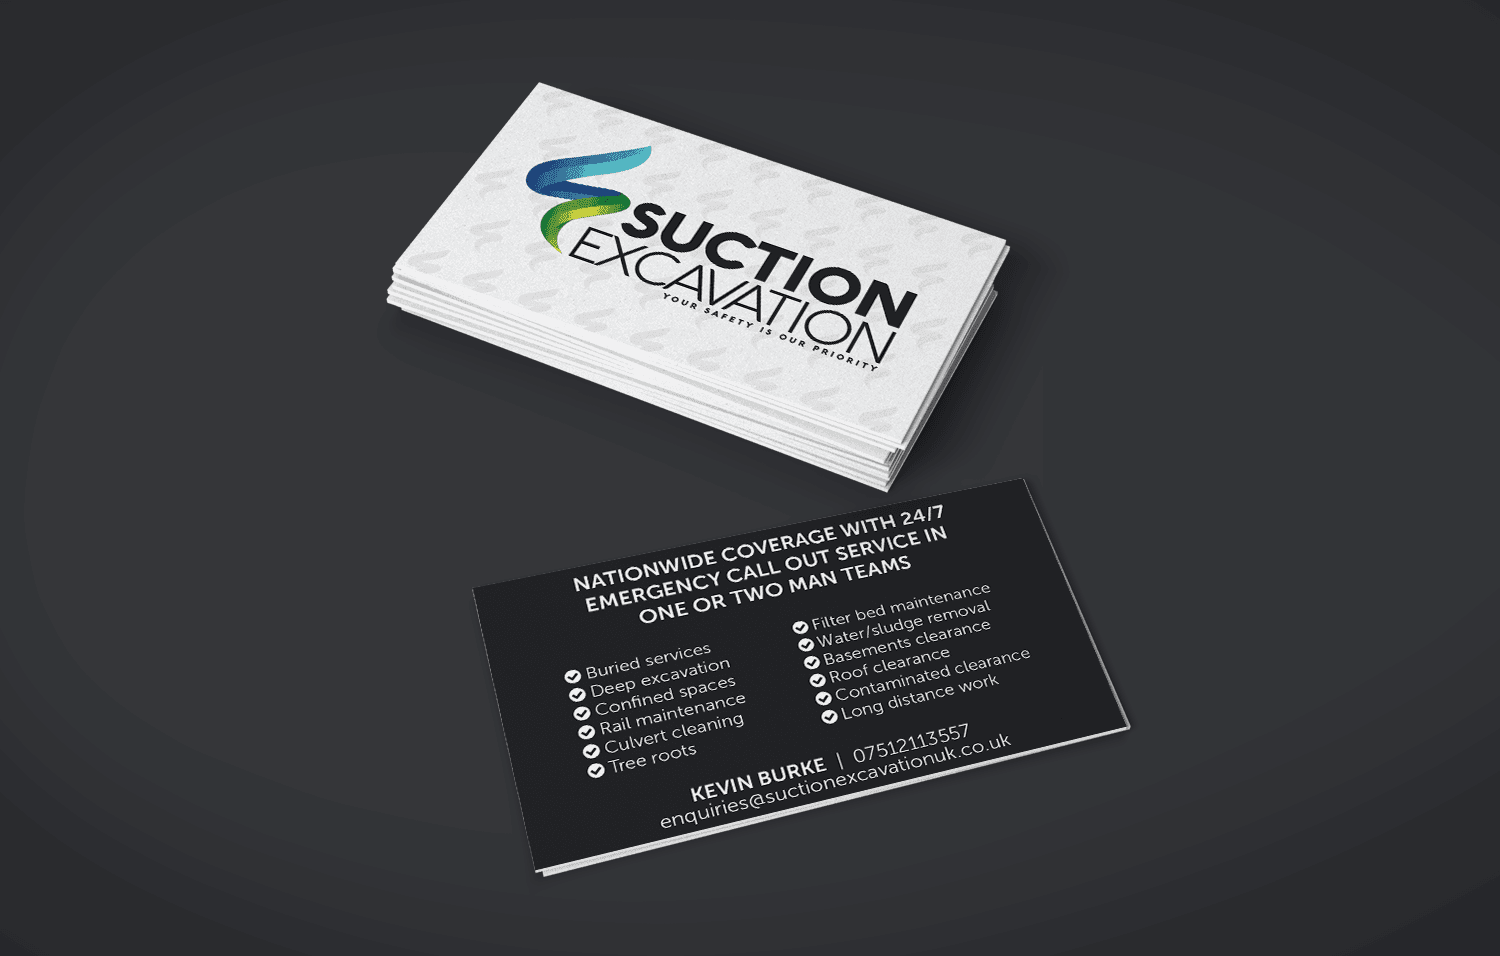 Suction Excavation business cards